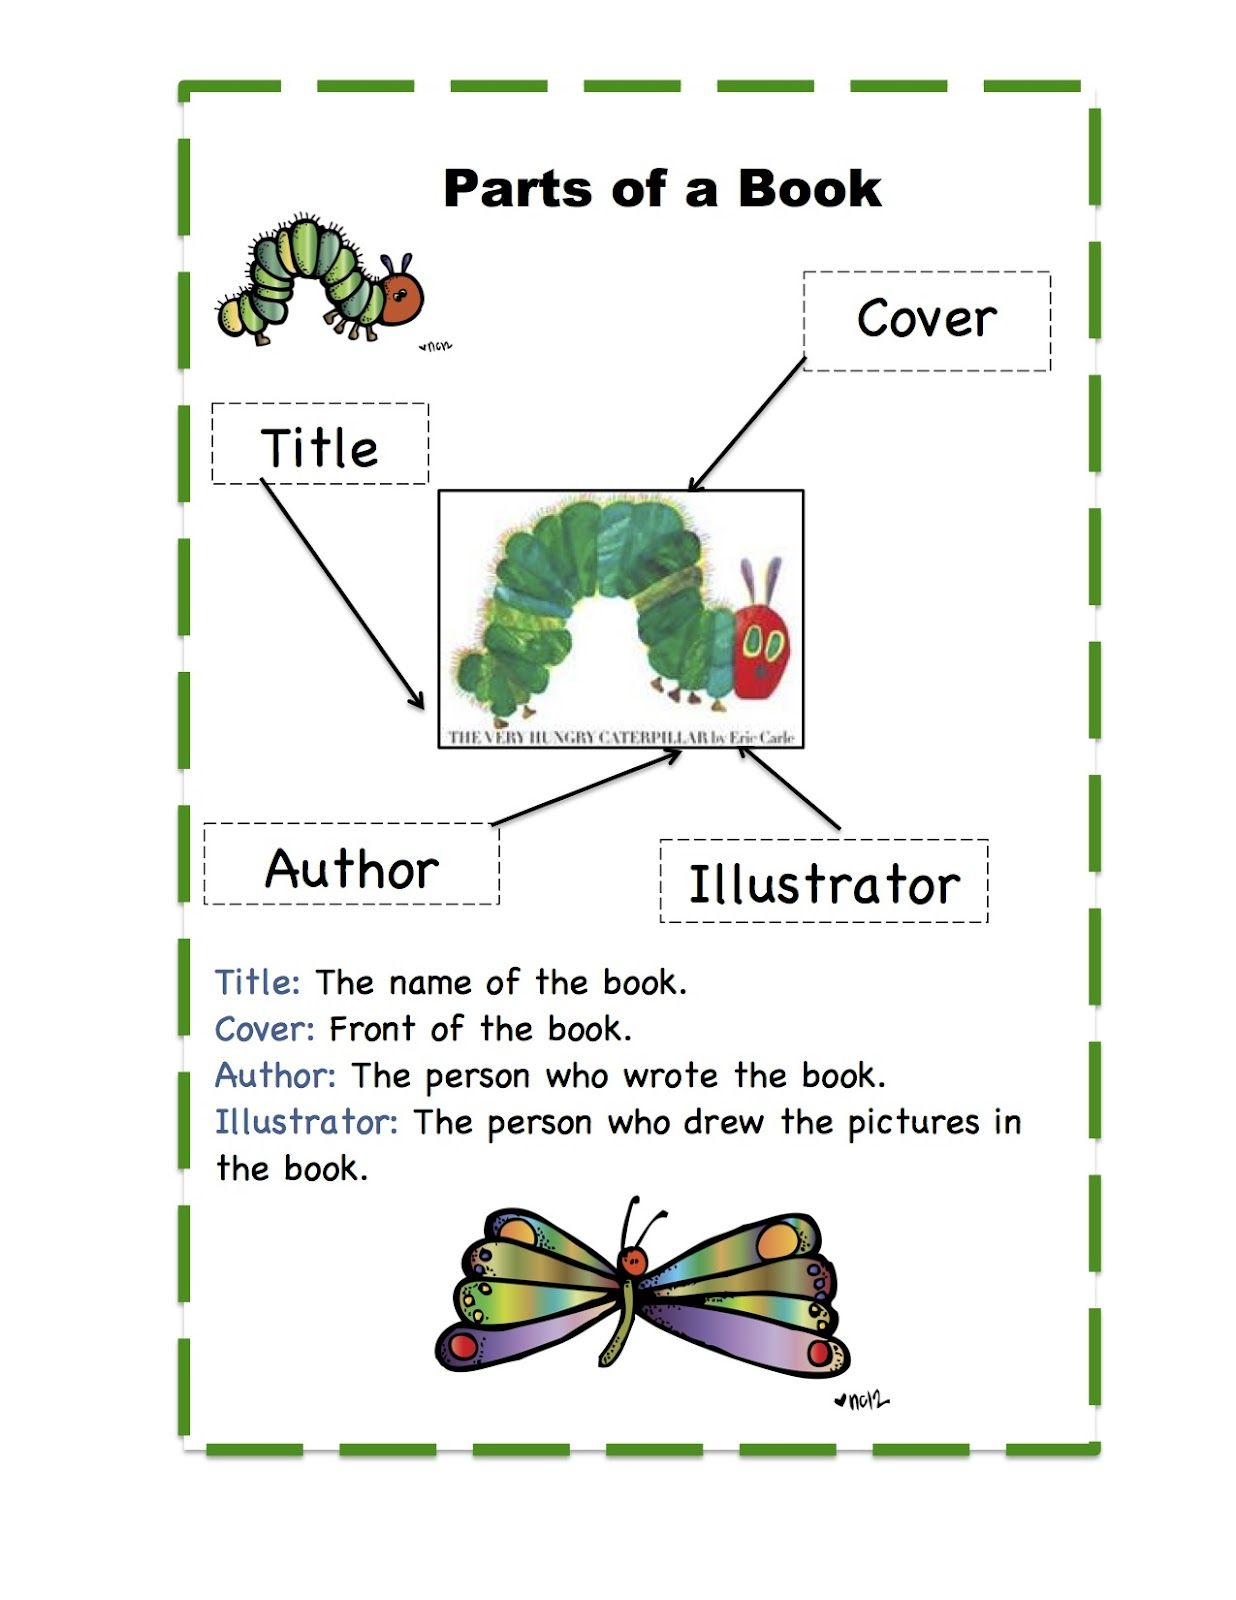 hungry caterpillar book printable preschool printables by gwyn pinterest caterpillar book. Black Bedroom Furniture Sets. Home Design Ideas